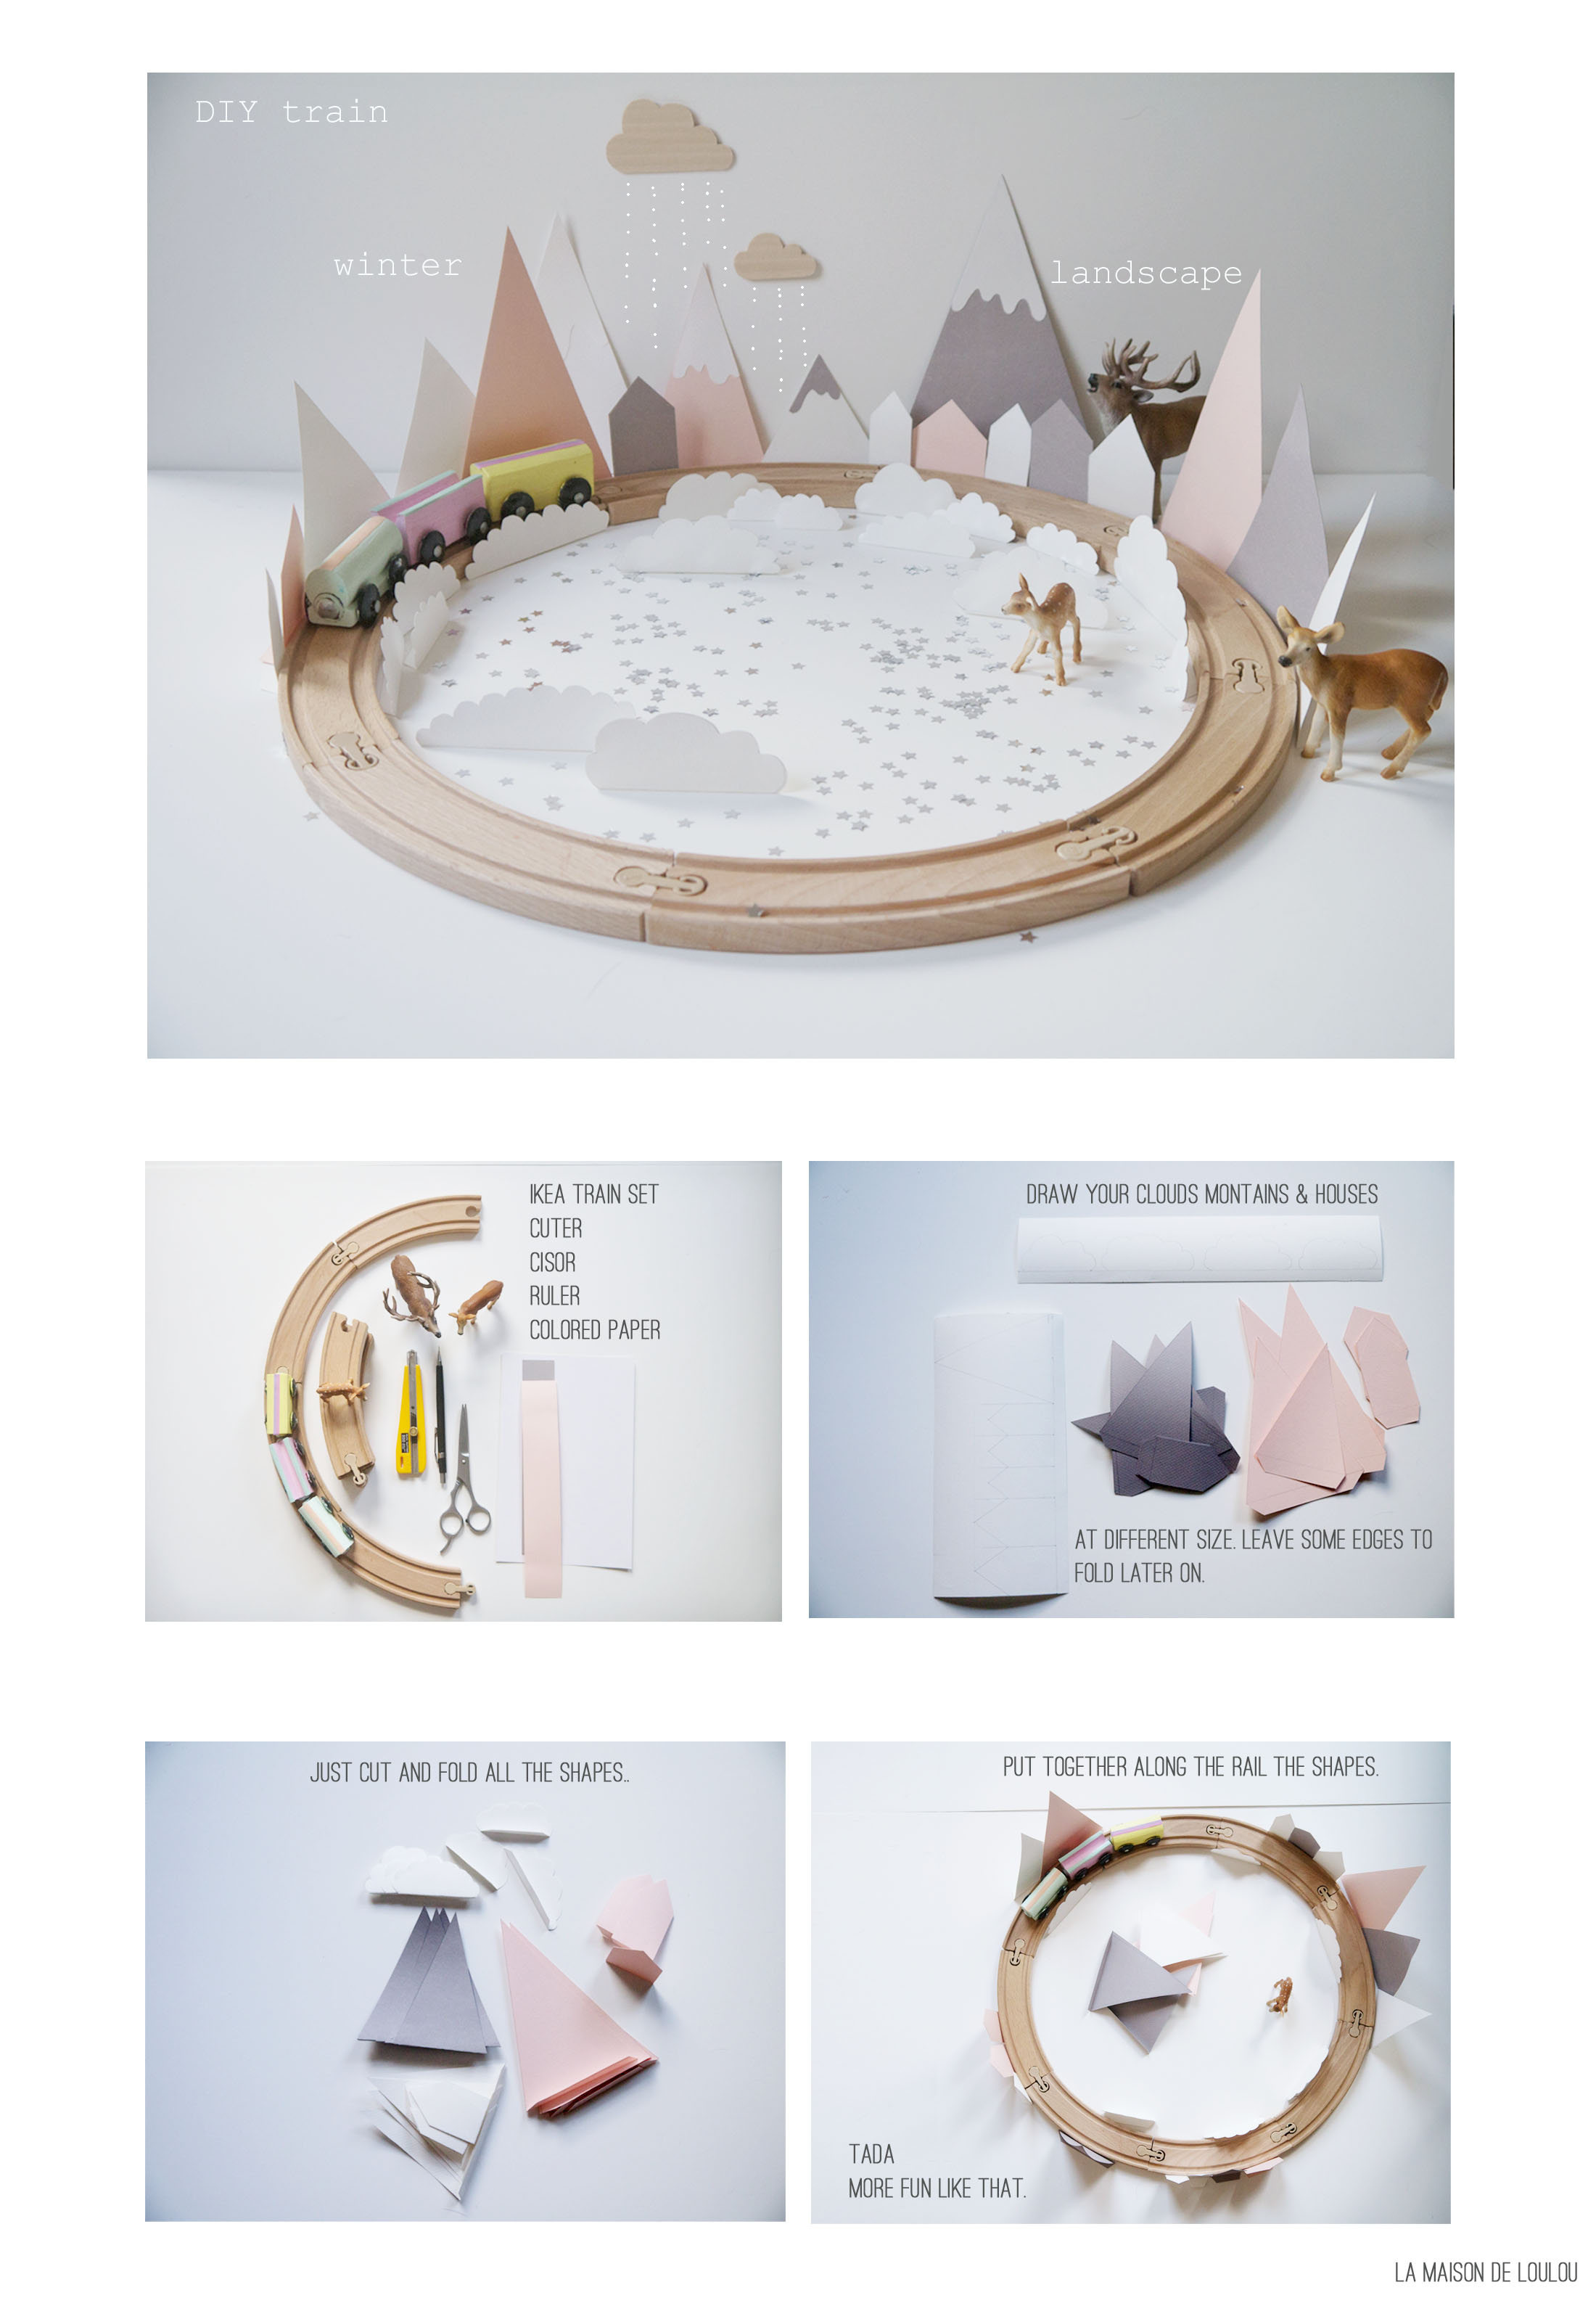 DIY winter train 2014 by La maison de Loulou